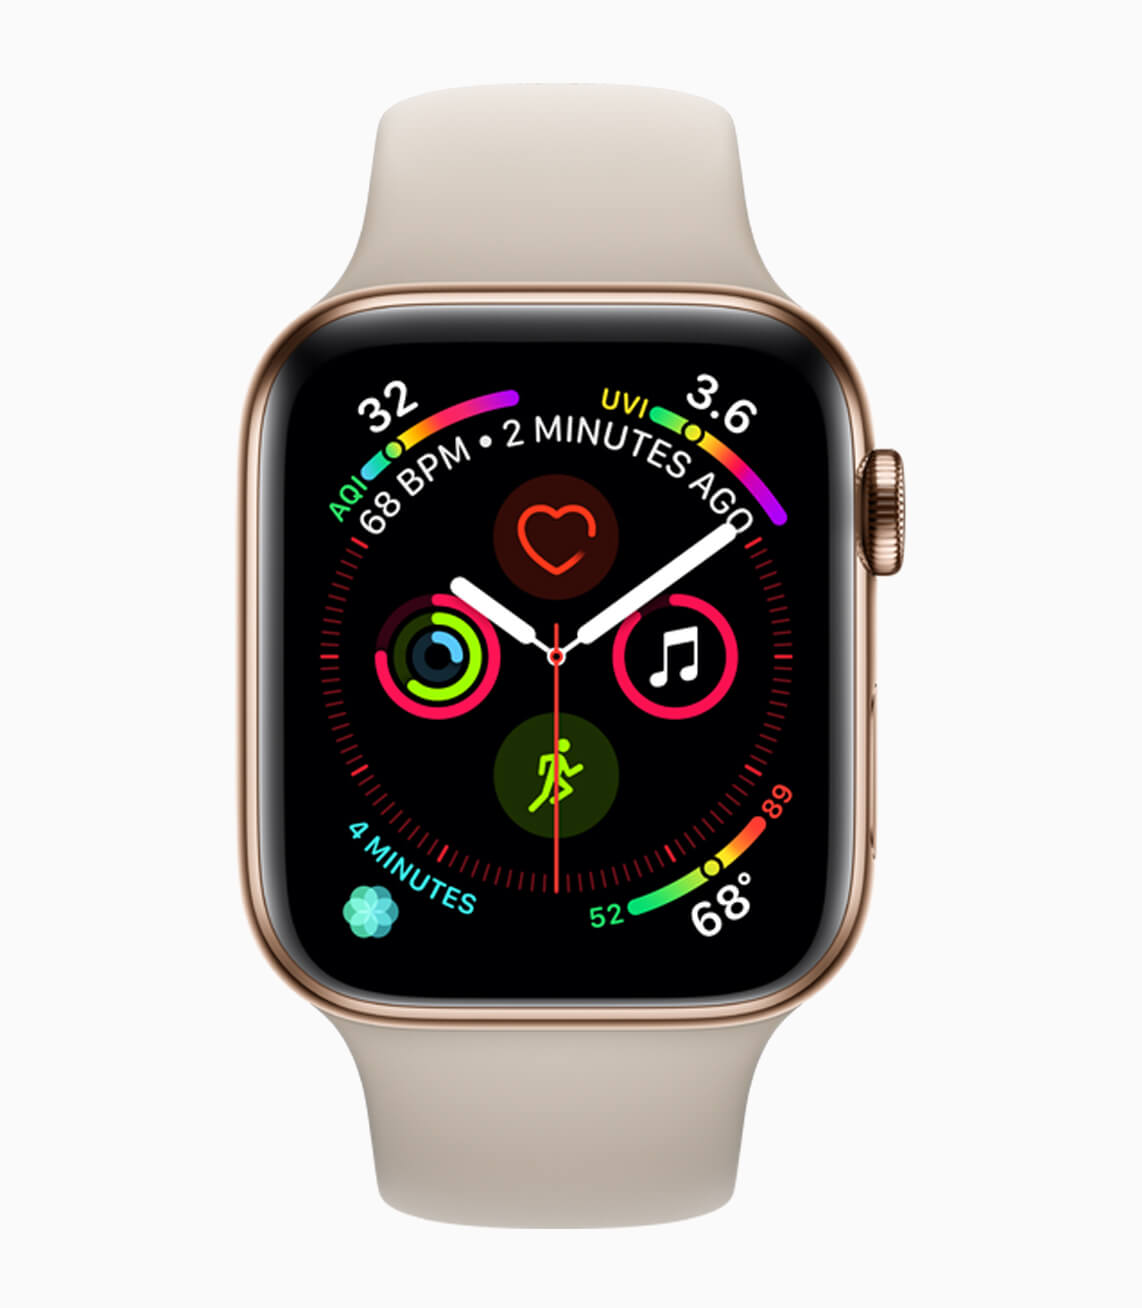 Apple Watch Series4 LiquidMetal face 09122018 - Apple Watch Series 4; o pequeno notável (review)